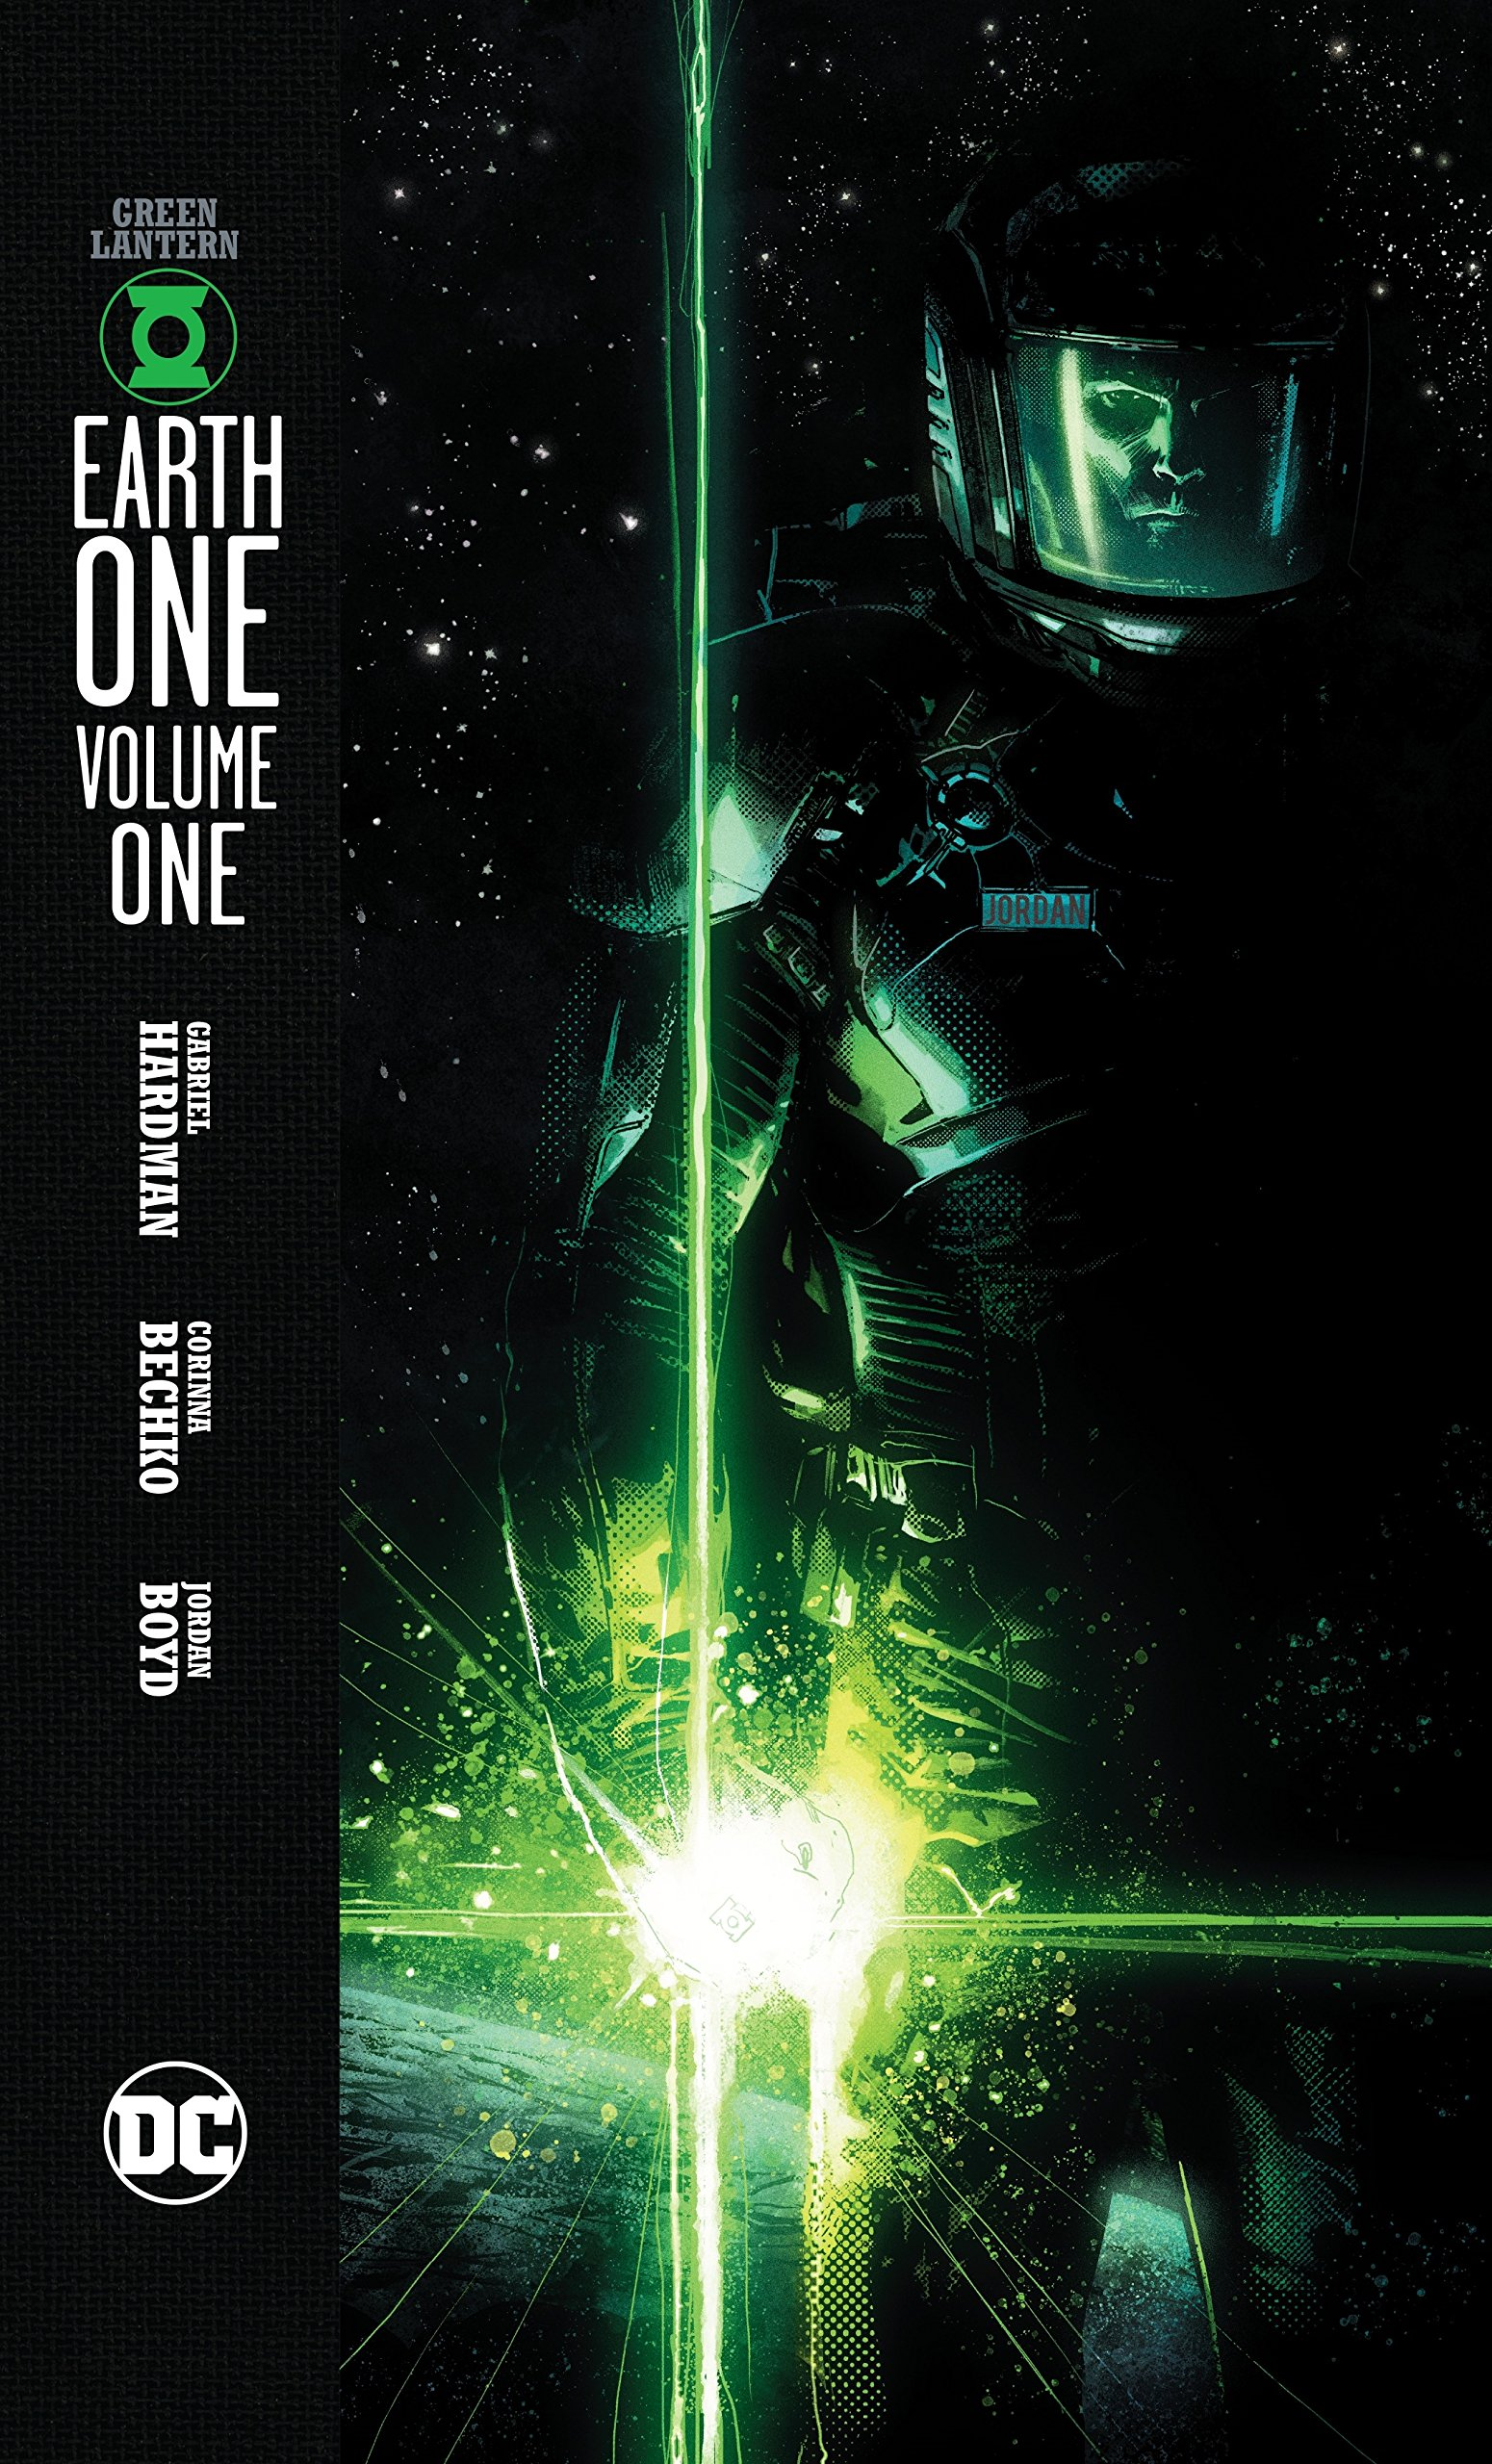 Green Lantern: Earth One Vol. 1 (Hardcover)